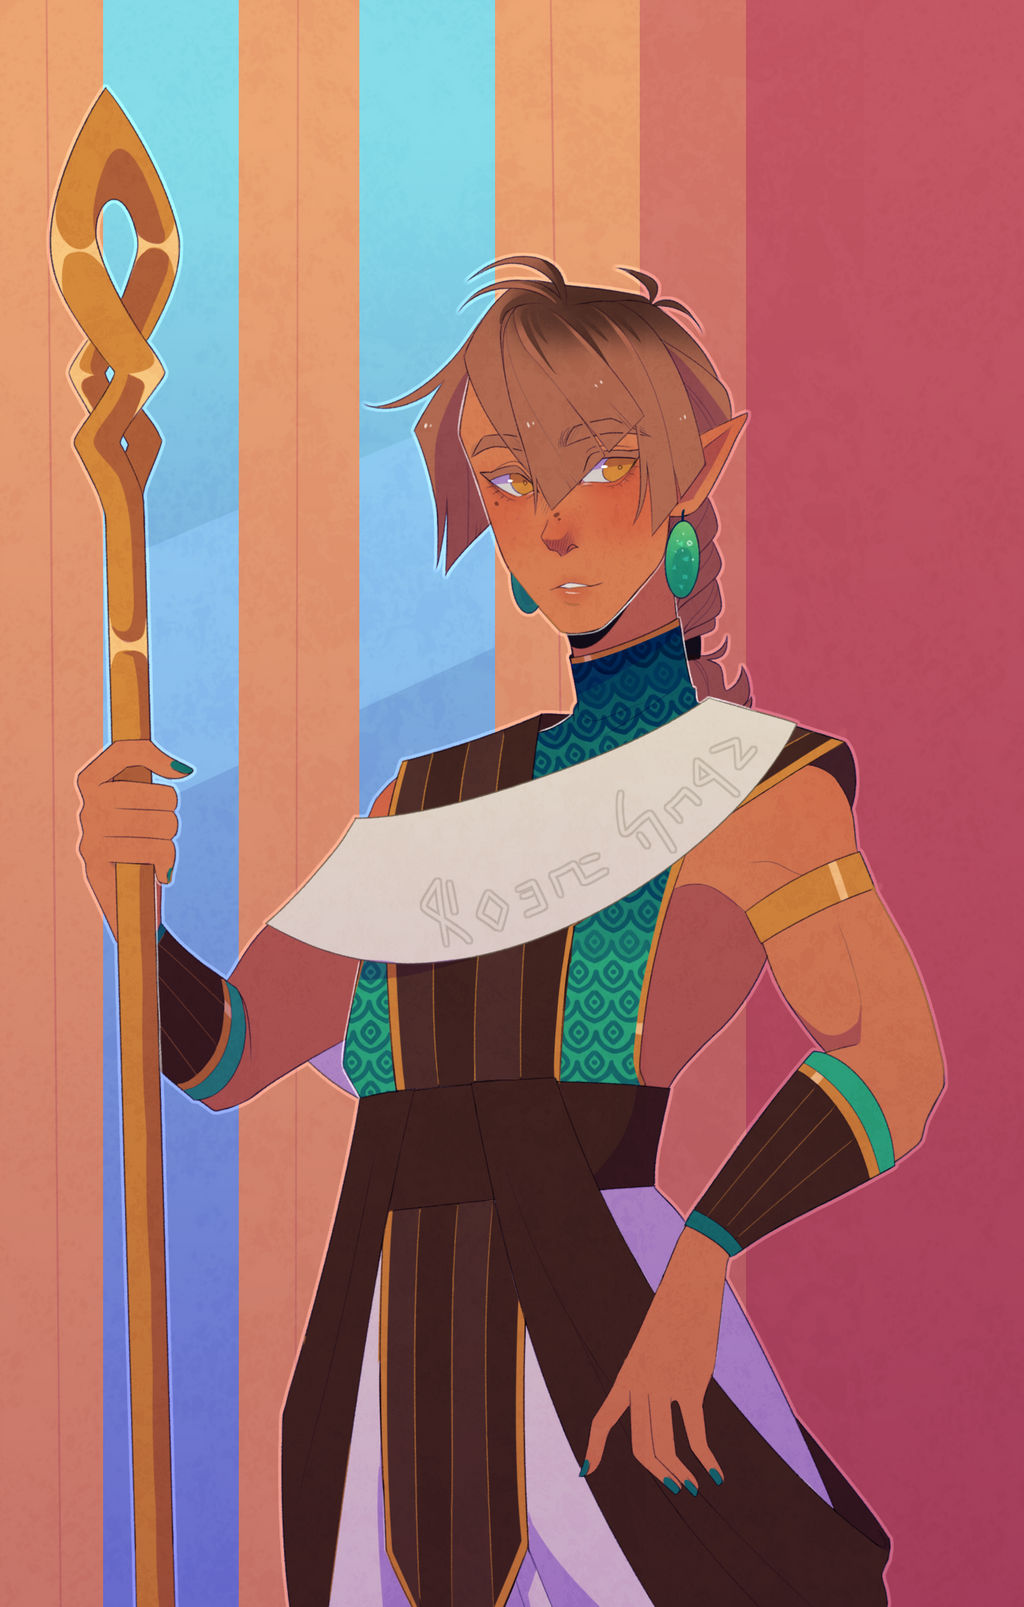 Guard outfit by Looji